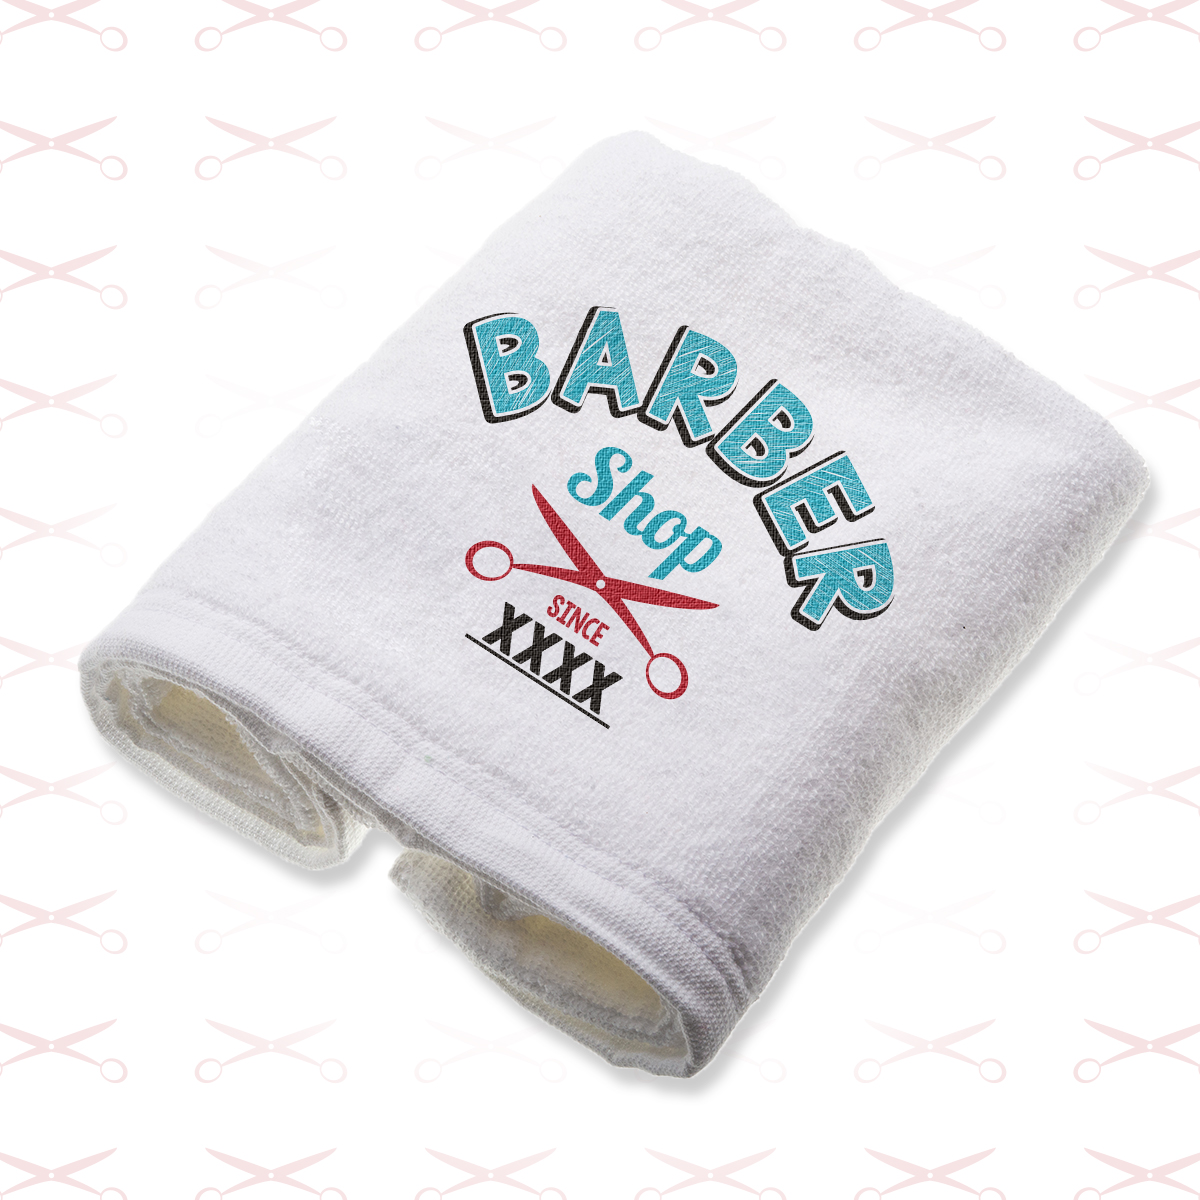 6 Brilliant Ways Customers Can Use All Over Print Towels